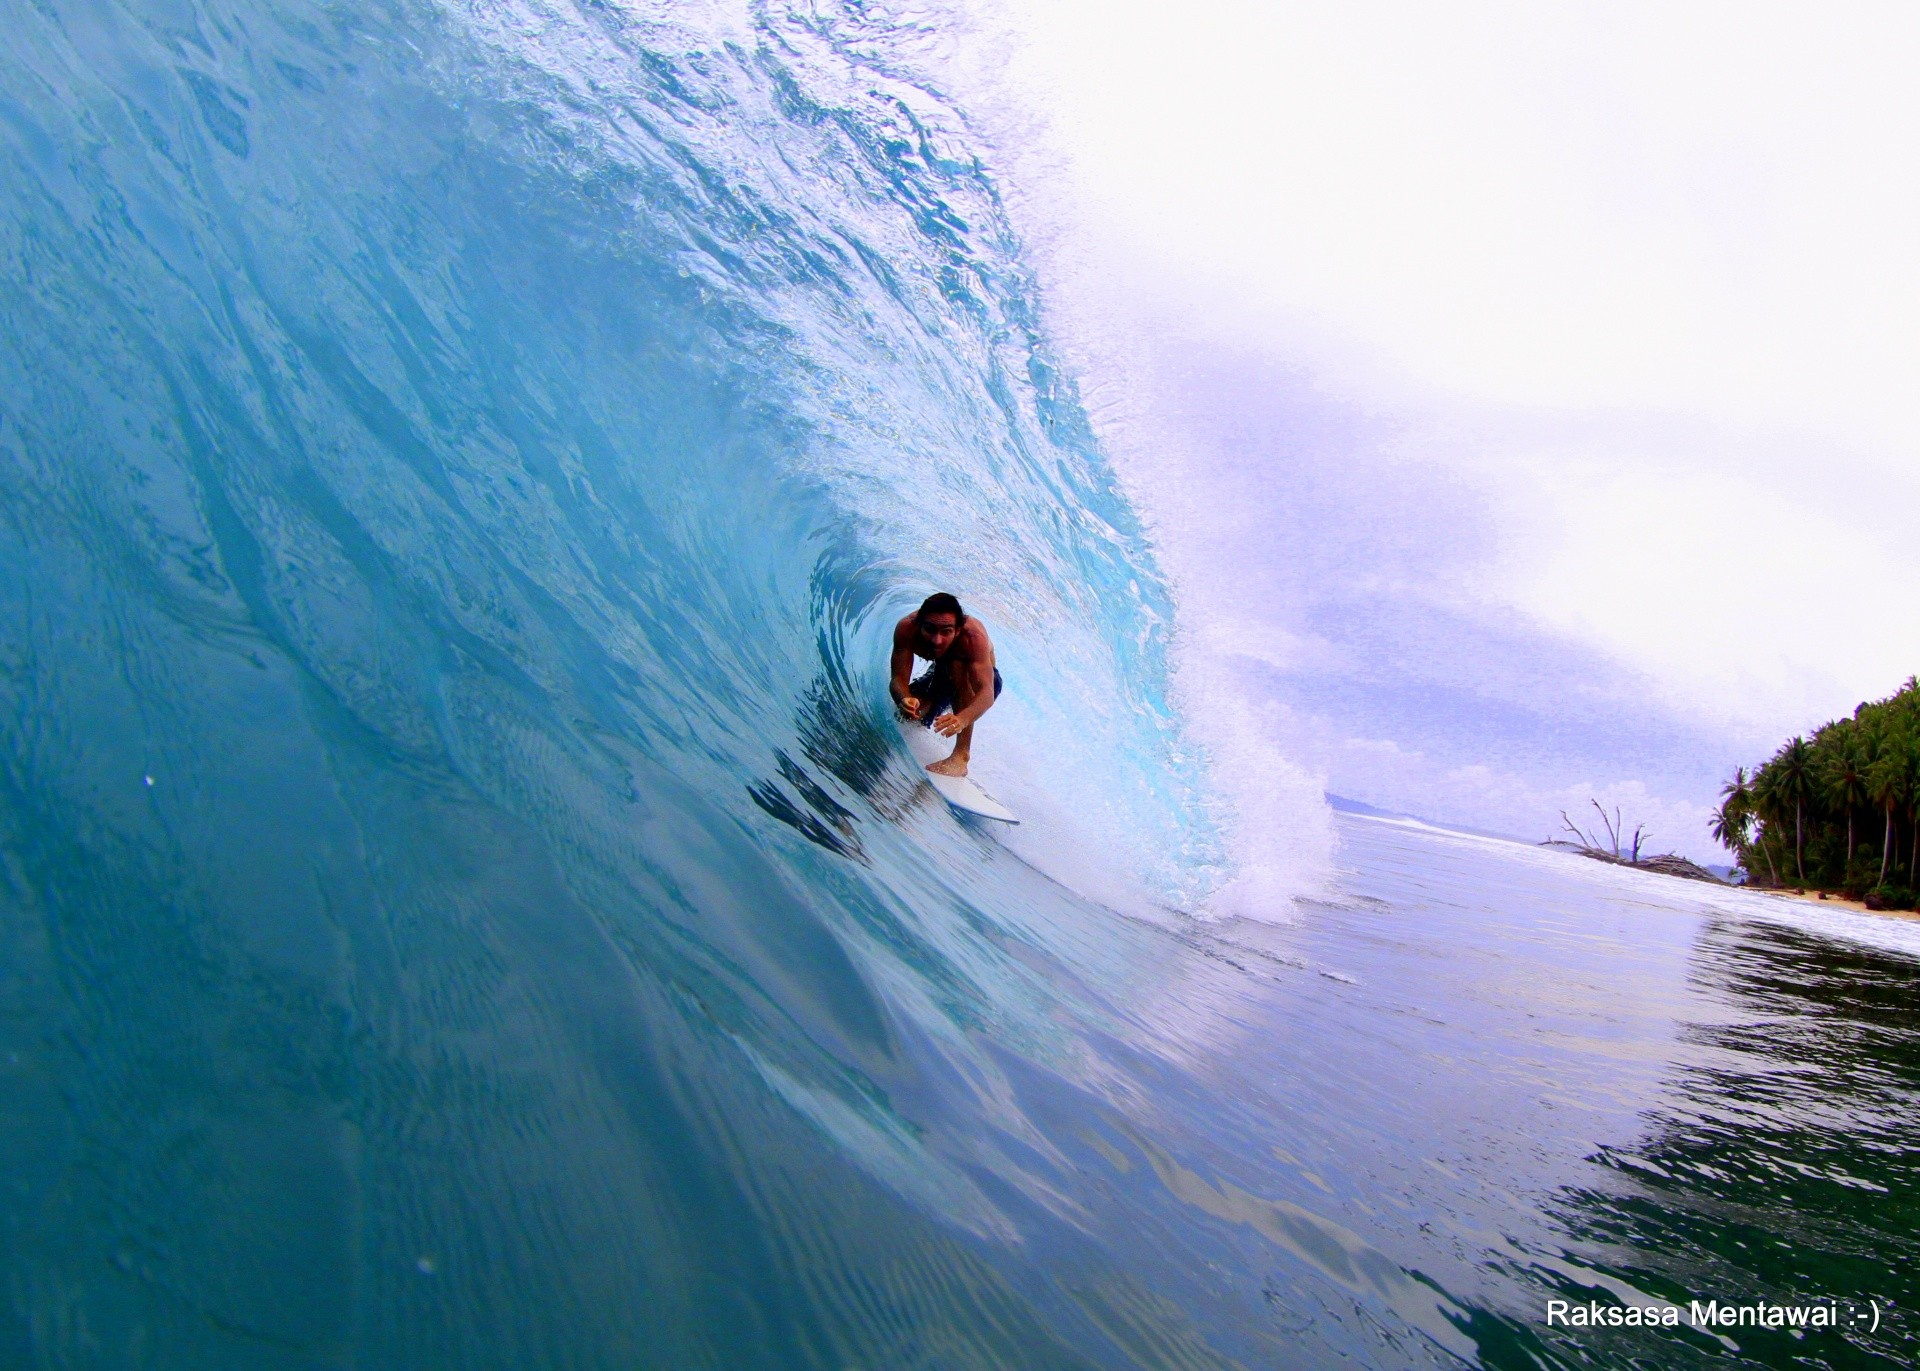 Rodney Odgaard/Raksasa Mentawai's photo of Pit Stops